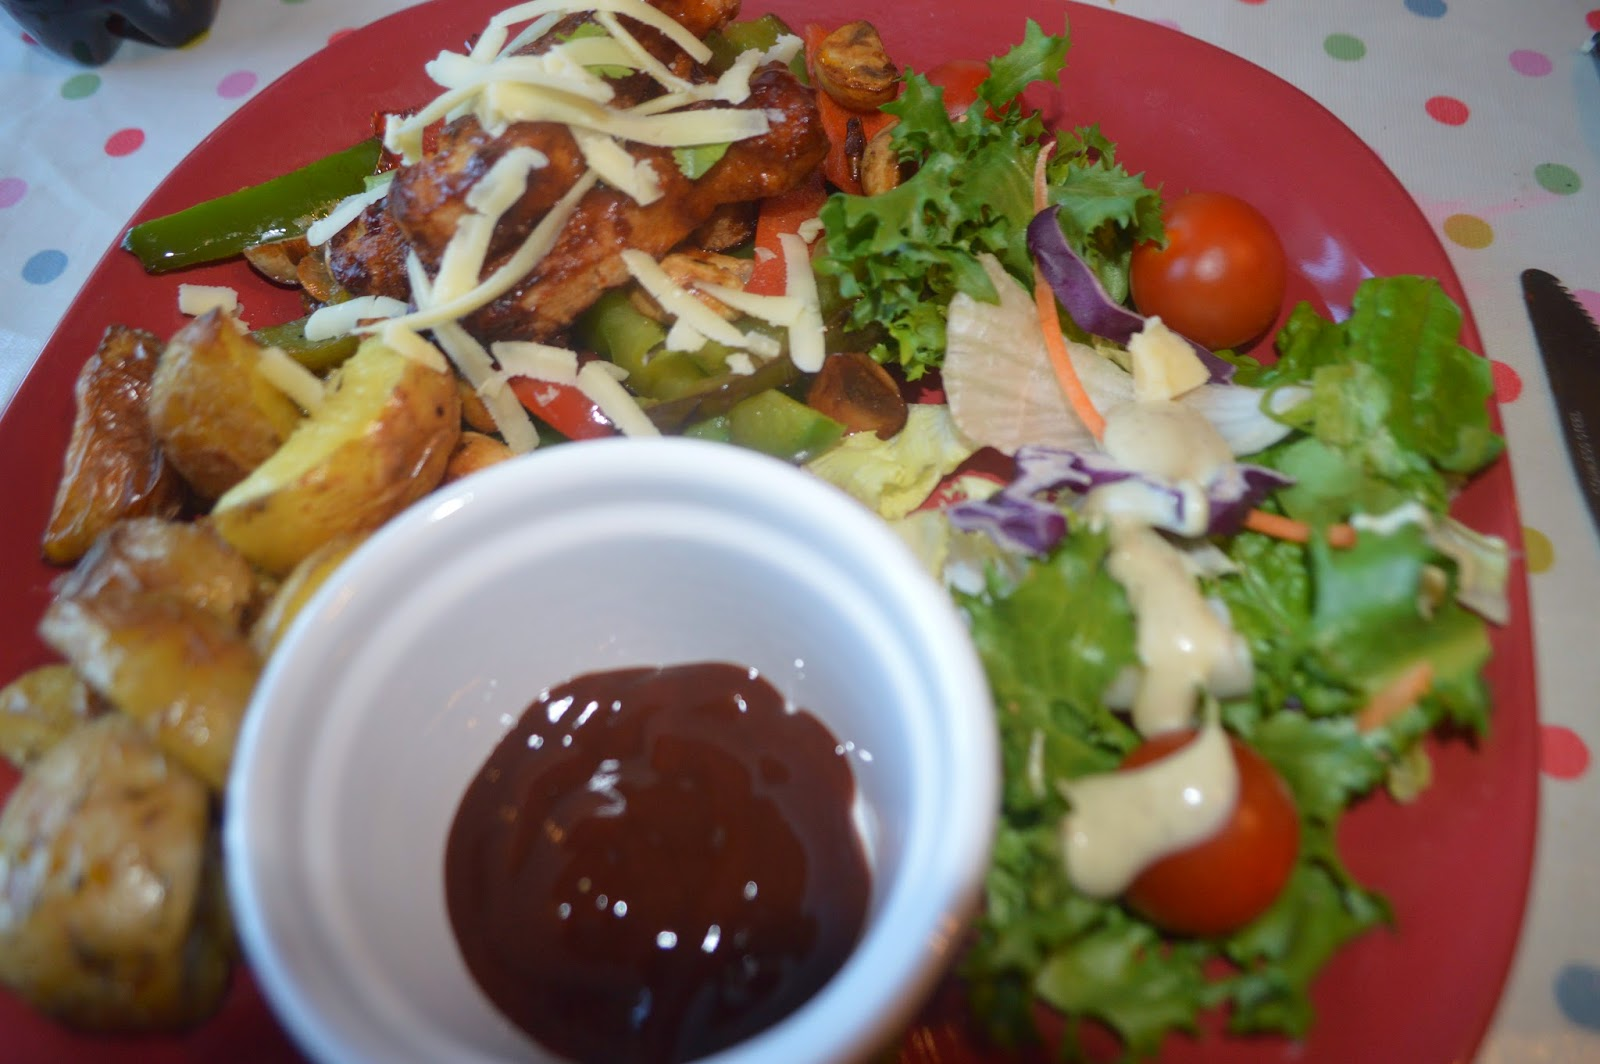 Heinz, Asda, Barbecue Chicken, Recipe, Food, healthy, #shop